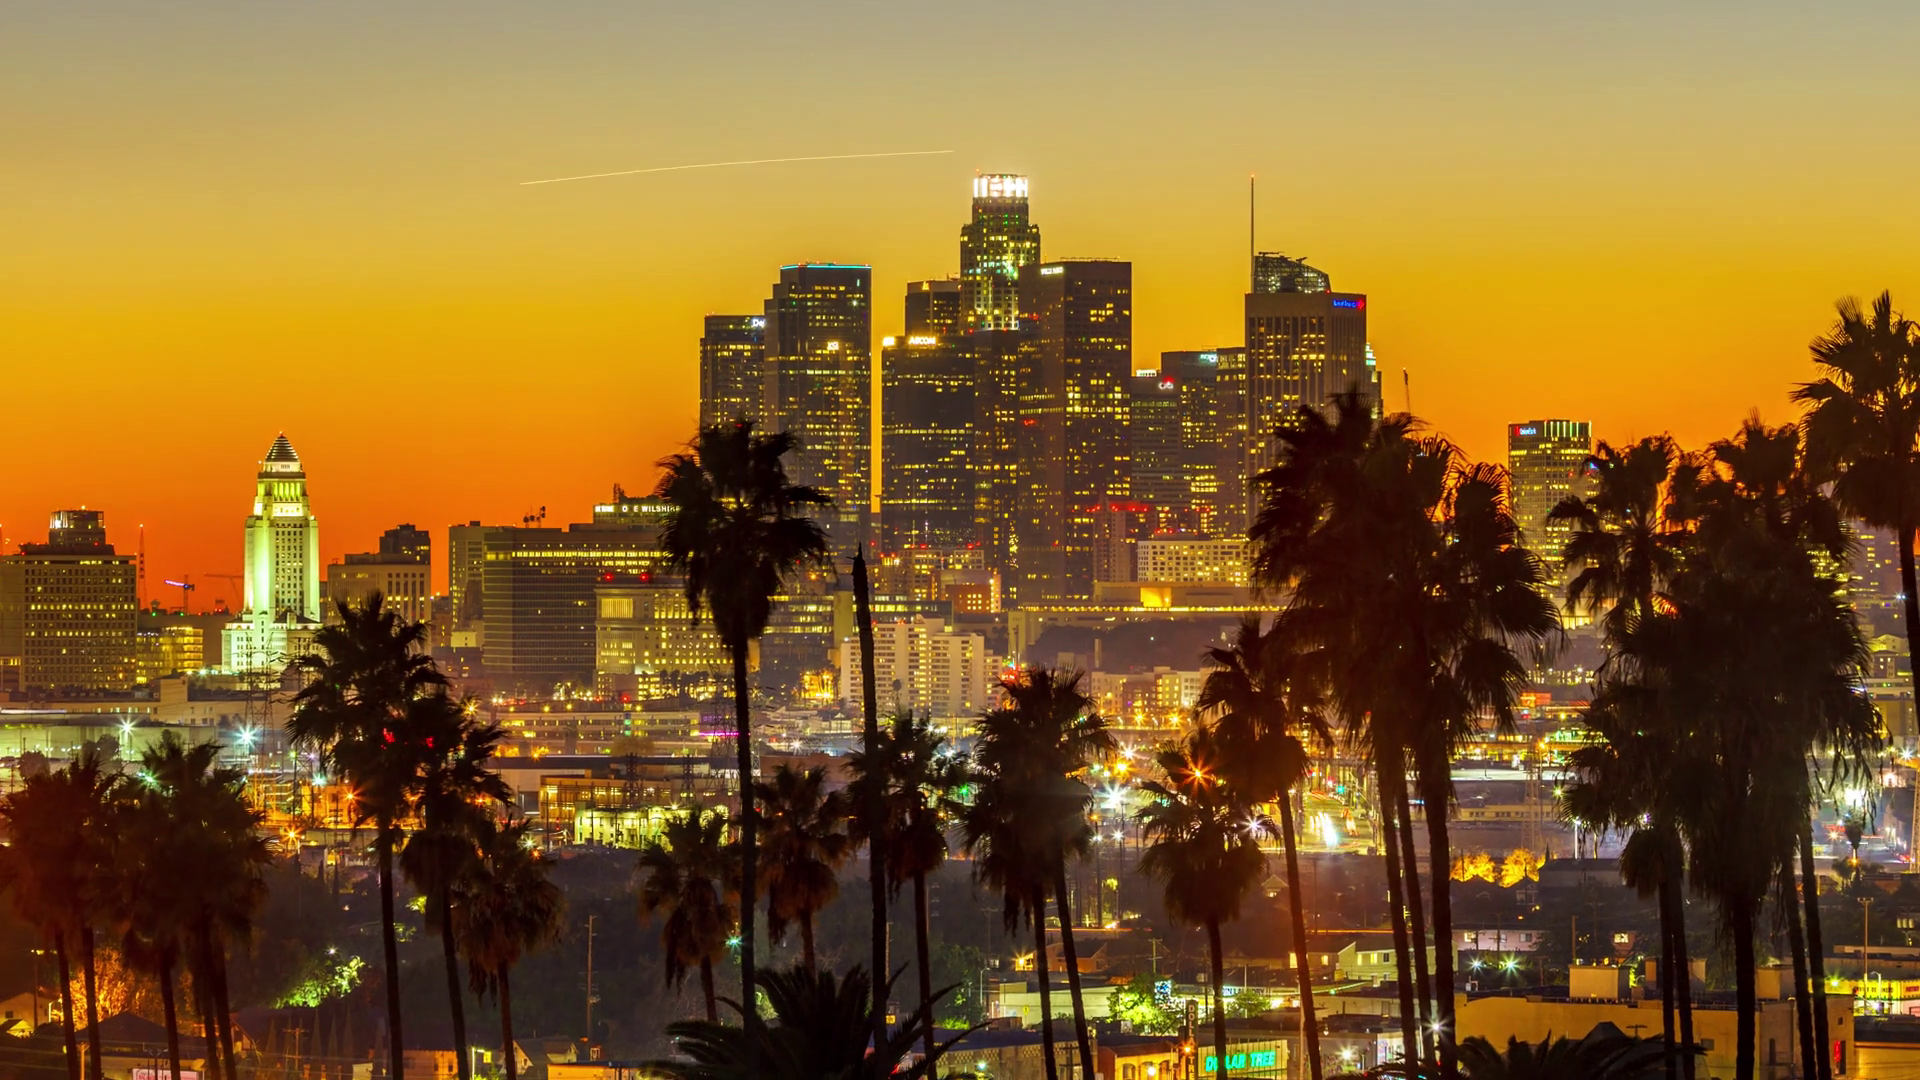 sunset-to-night-transition-zoom-out-of-city-of-los-angeles-downtown-skyline-with-palm-trees-silhouettes-in-foreground-4k-uhd-timelapse_bniwlnslg_thumbnail-full01.png